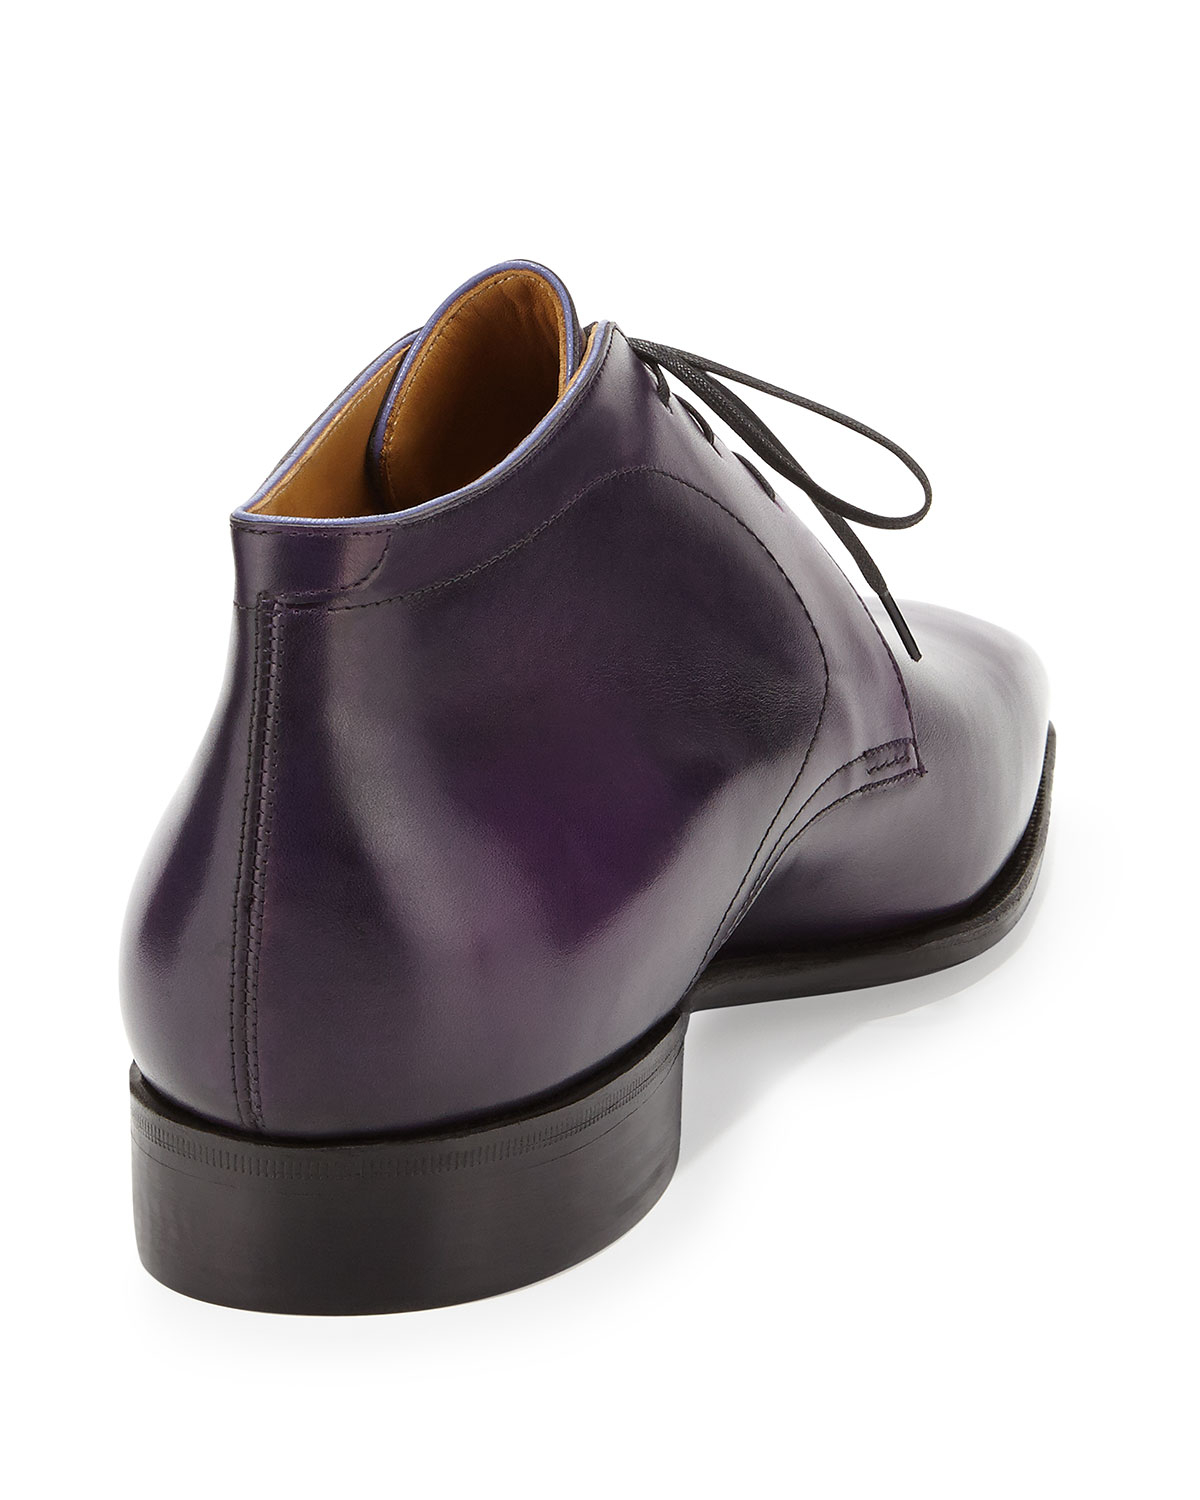 Corthay Dress Leather Chukka Boot In Purple For Men Lyst